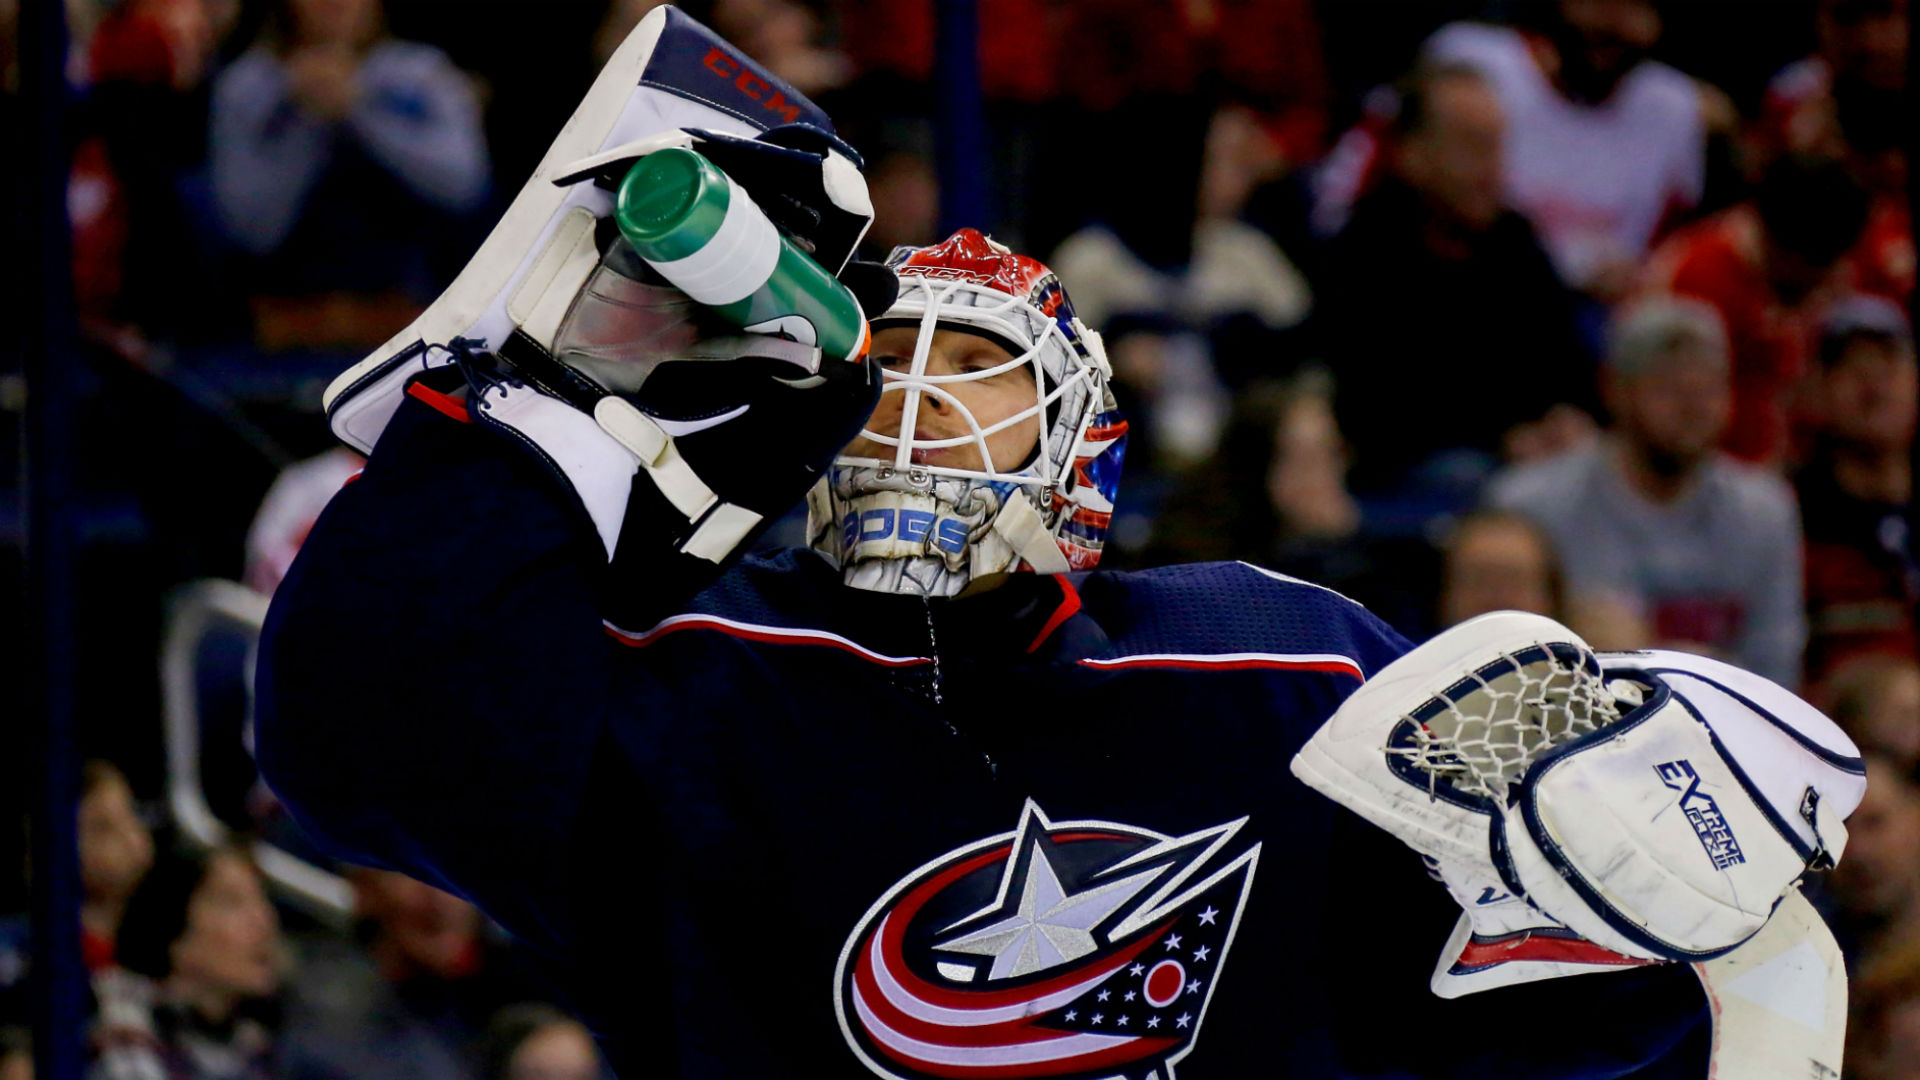 'A Blue Jacket for now': Columbus facing no-win situation with Sergei Bobrovsky